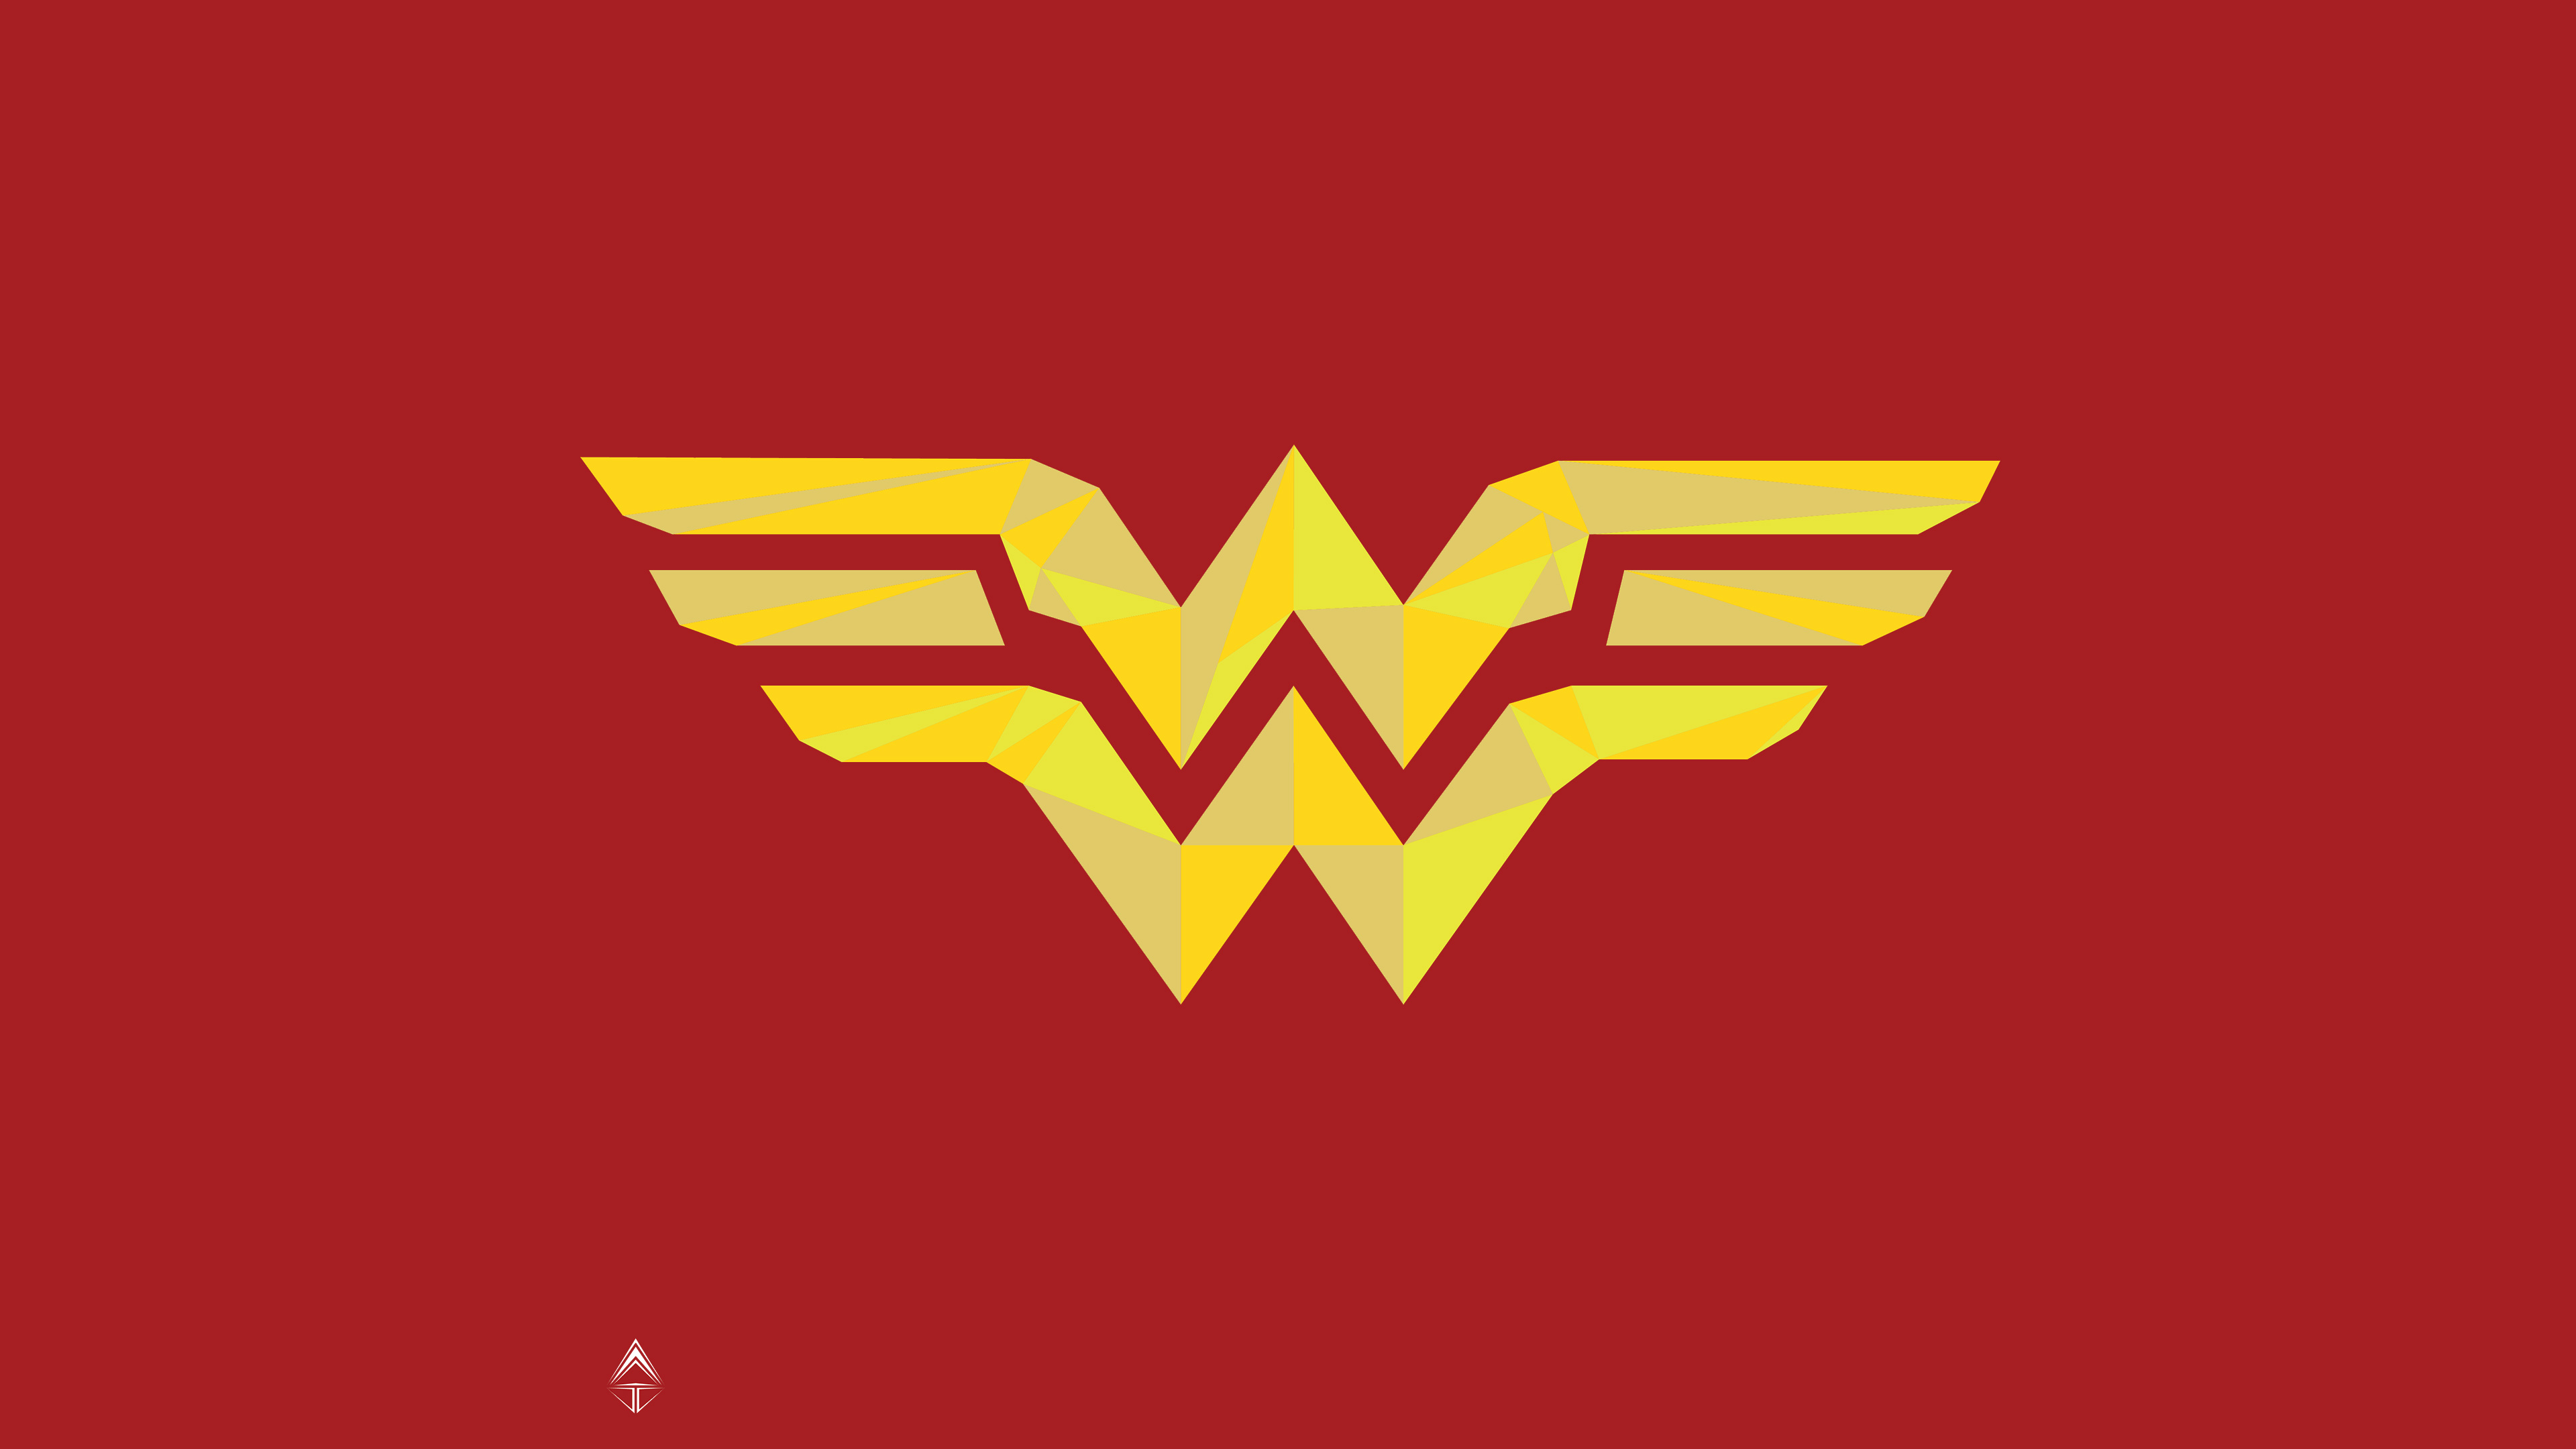 1080x2280 Wonder Woman Logo 4k Artwork One Plus 6 Huawei P20 Honor View 10 Vivo Y85 Oppo F7 Xiaomi Mi A2 Hd 4k Wallpapers Images Backgrounds Photos And Pictures